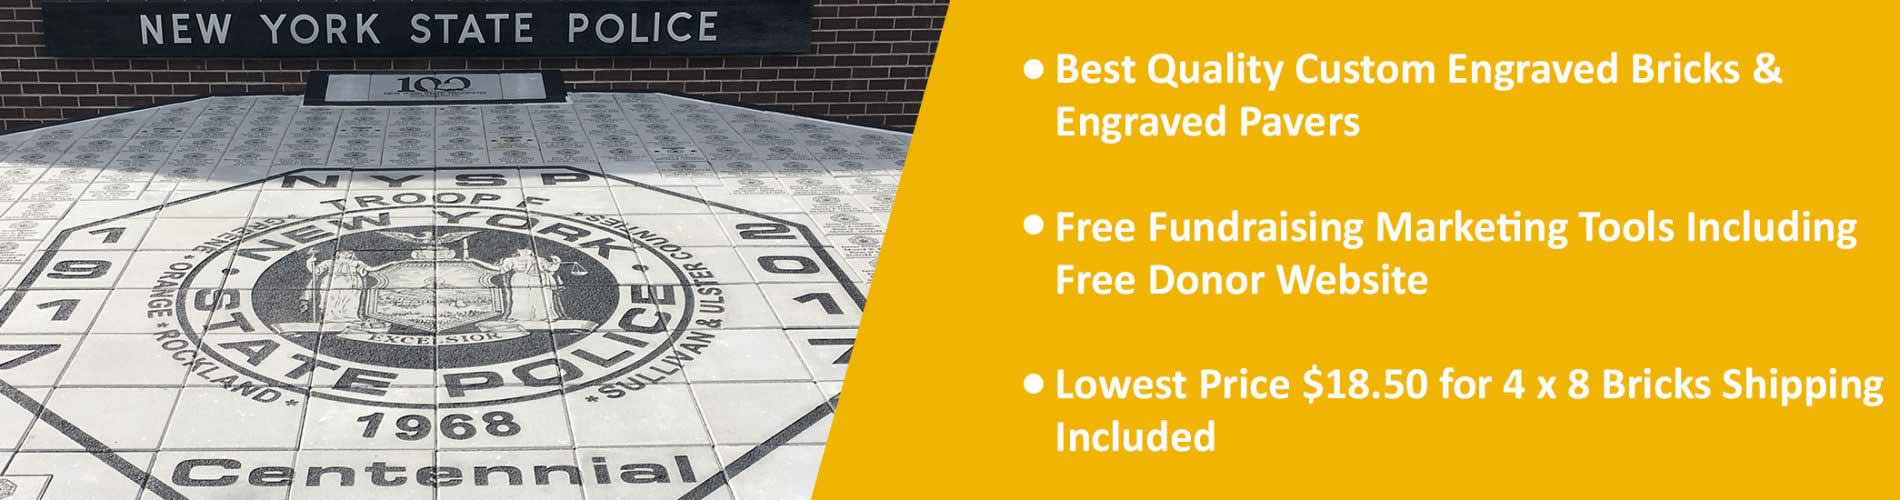 Best Quality Custom Engraved Bricks & Engraved Pavers Free Fundraising Marketing Tools Including Free Donor Website Lowest Price $18.50 for 4 x 8 Bricks Shipping Included